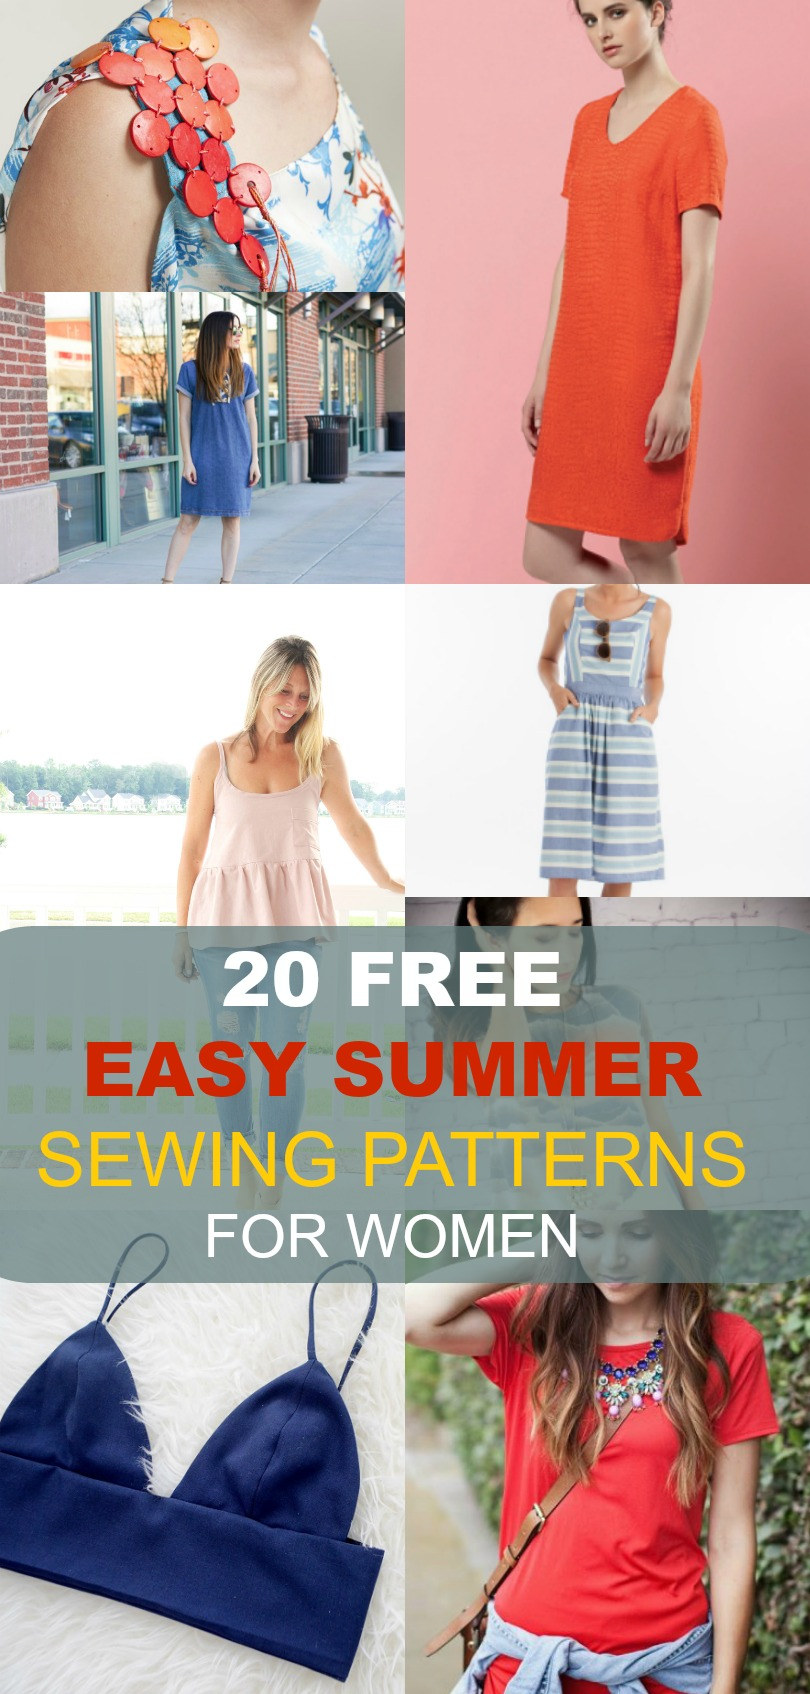 FREE SEWING PATTERNS: 20 Easy Summer Patterns for Women